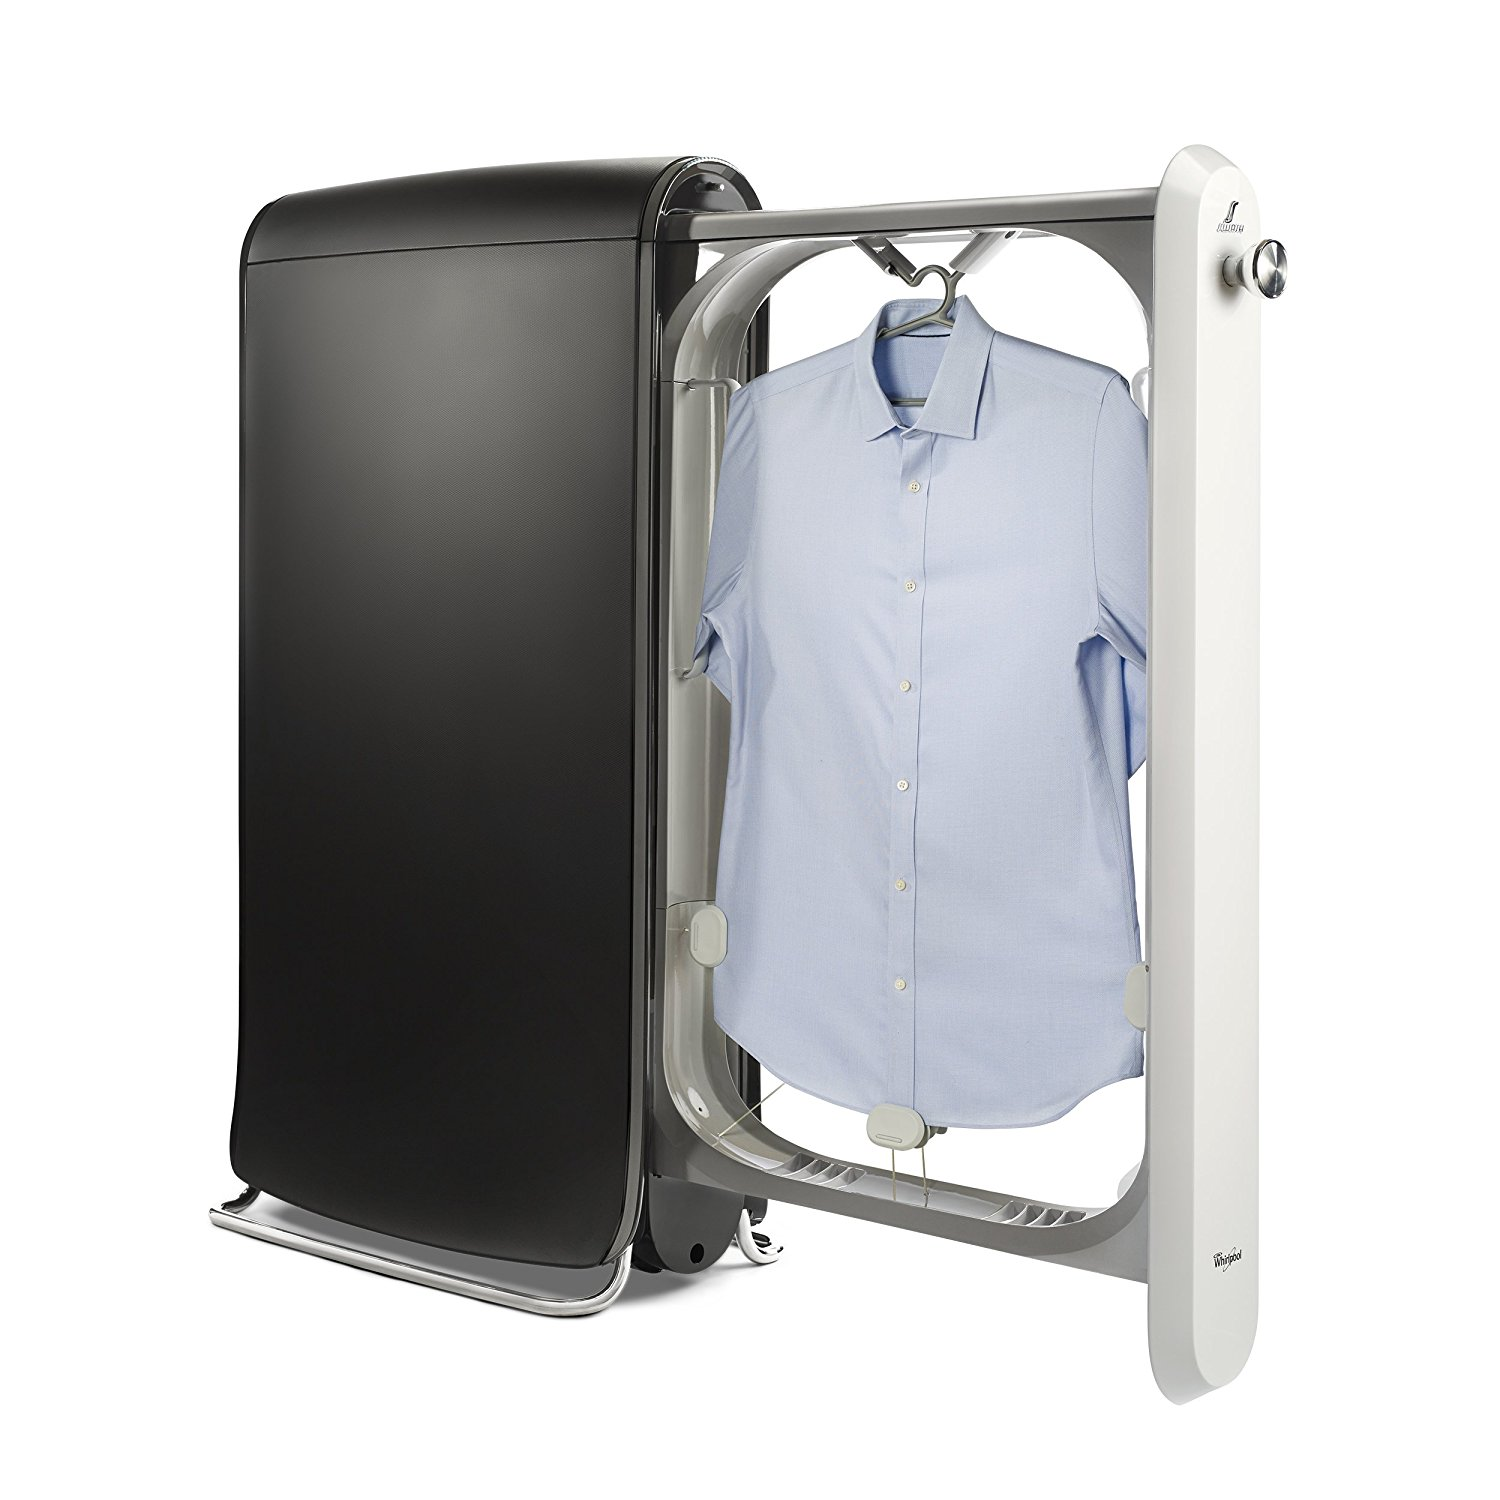 Take care of your Cloths smartly with Swash Clothing Care System